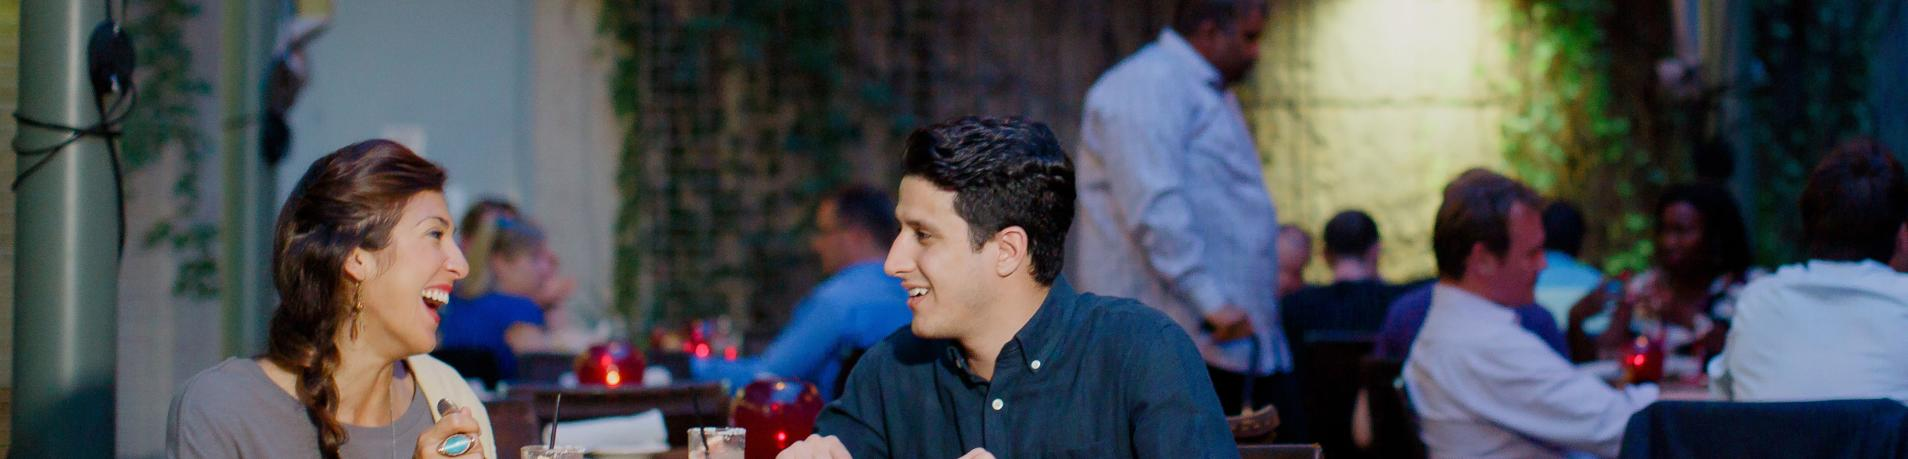 Best casual date spots in austin